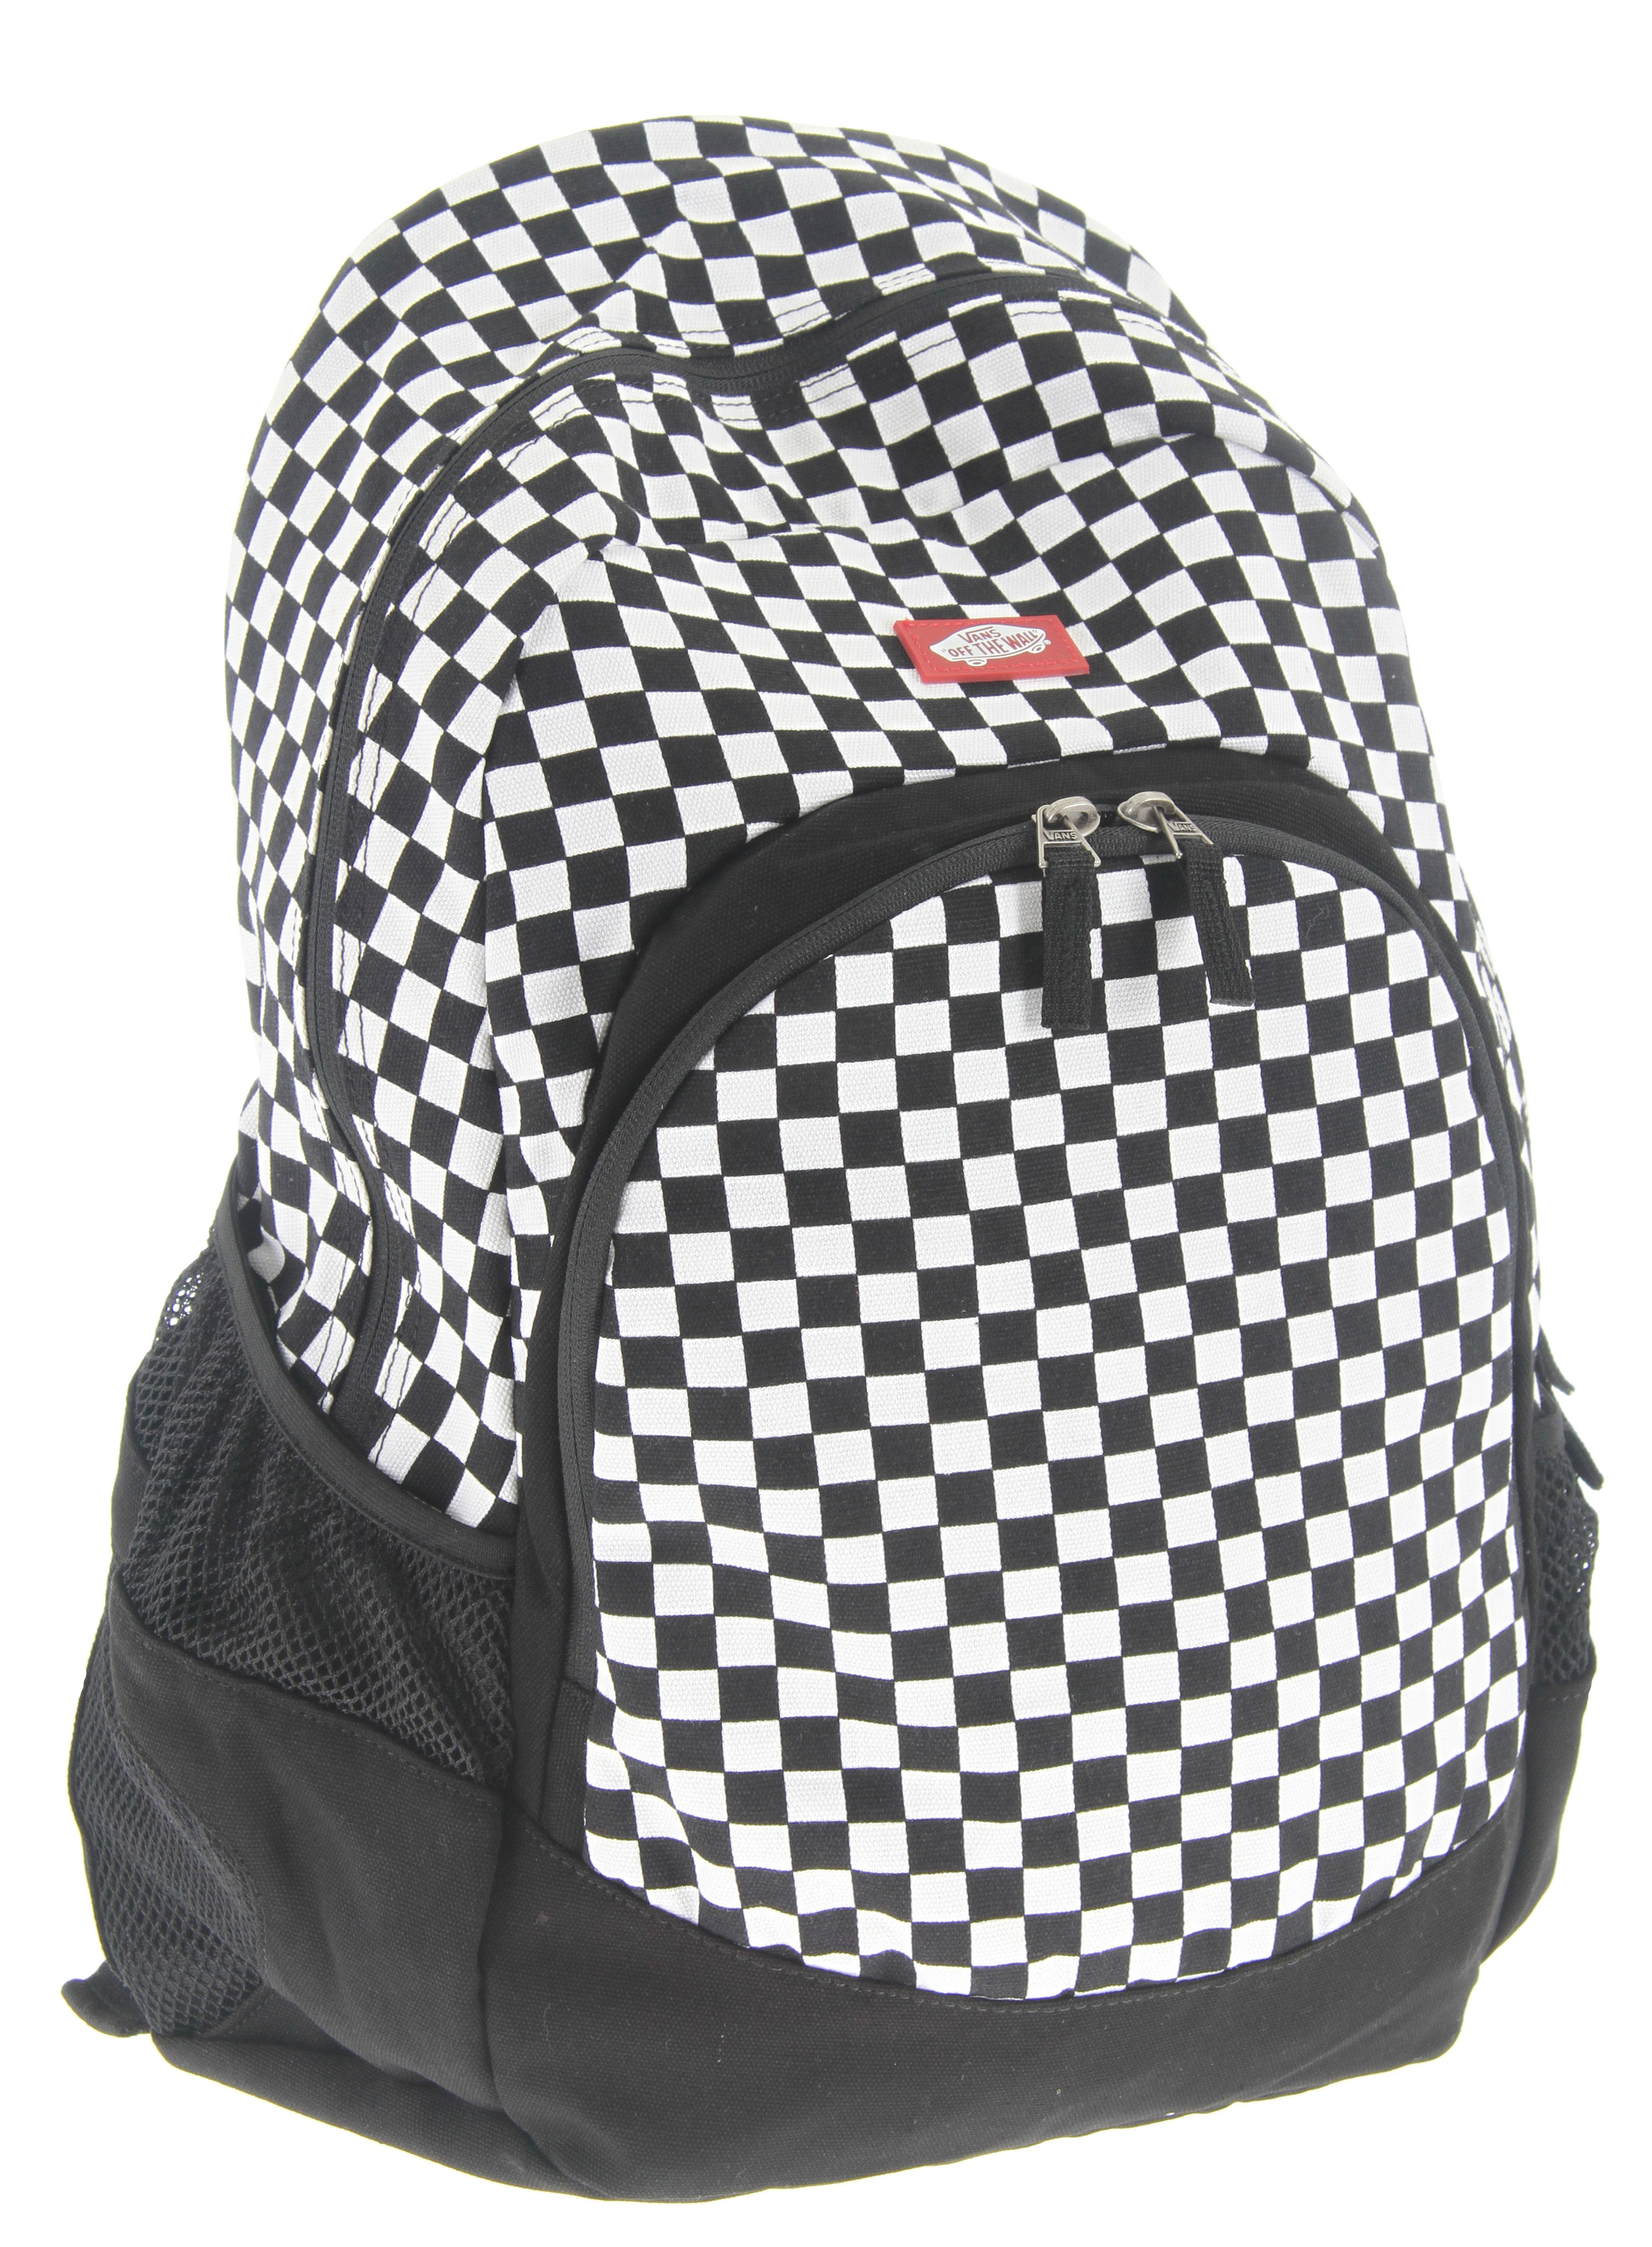 Skateboard Key Features of the Vans Van Doren Backpack: 100% Cotton Canvas backpack Front pocket with internal organizer Side mesh stash pockets Custom logo zip pulls and rubber heel tab details - $27.95